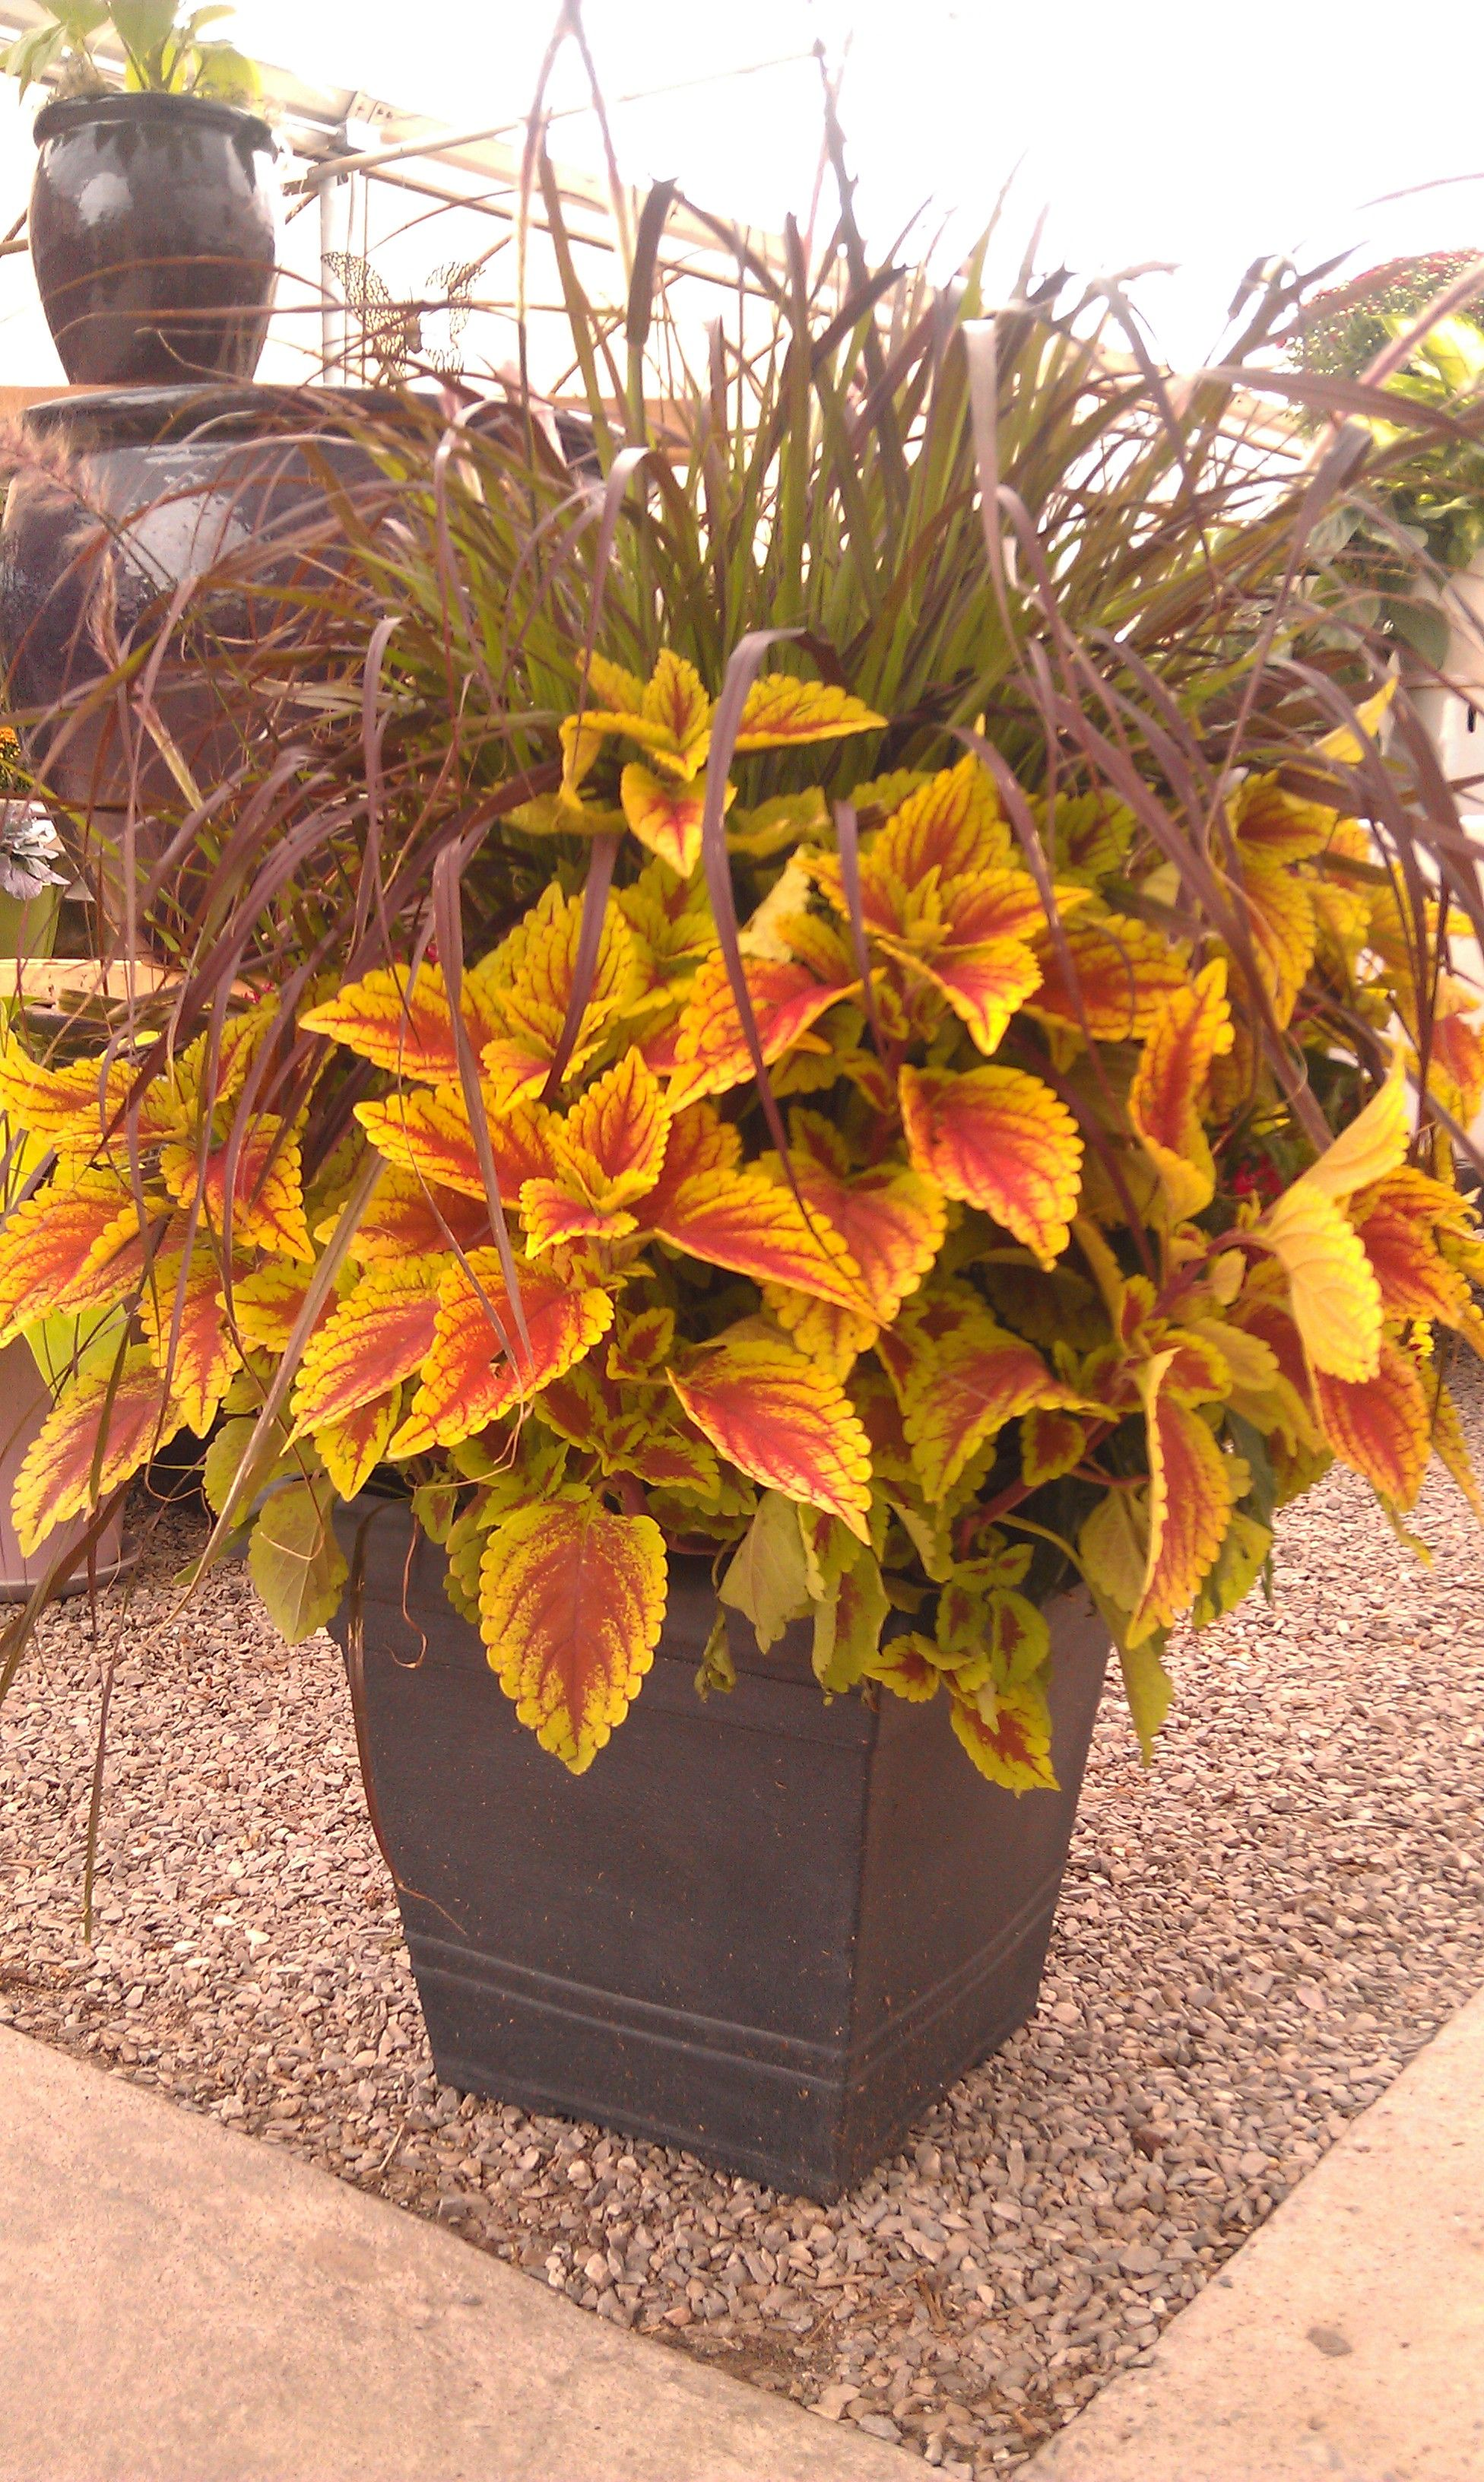 Potted Plants And The Necessary Spring Care: Coleus Adds Color To Any Pot